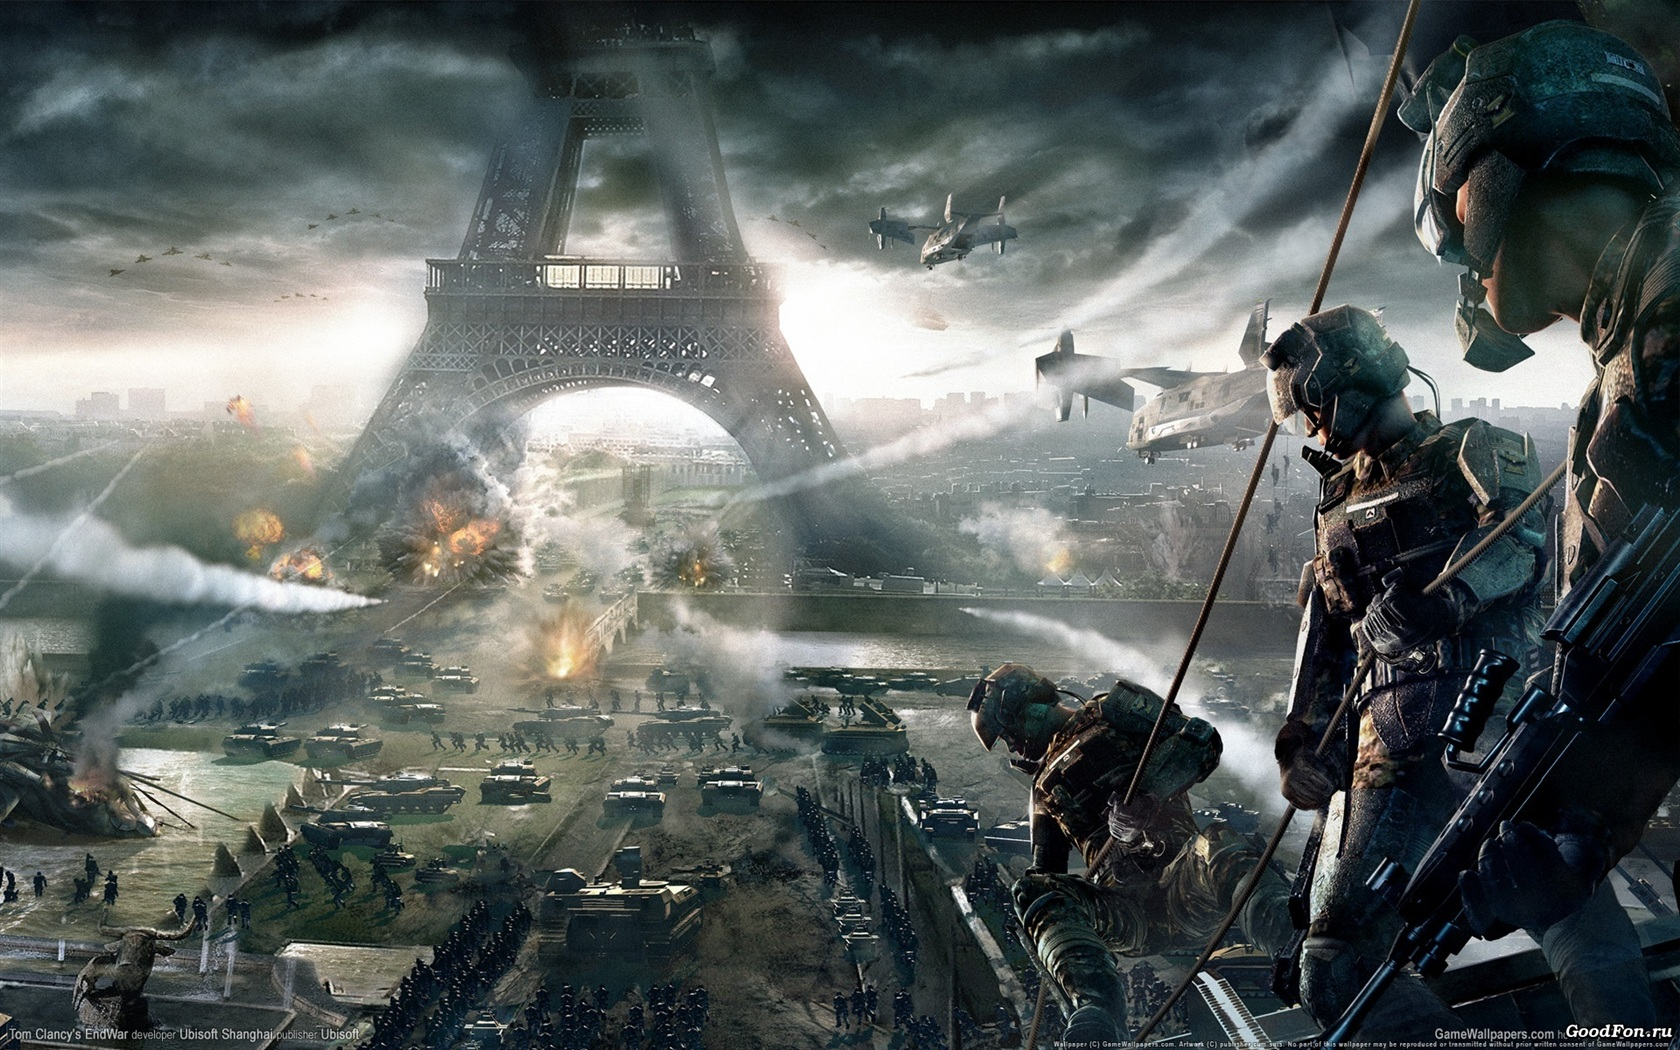 Wallpaper Tom Clancys Endwar at Paris 1920x1200 HD Picture Image 1680x1050